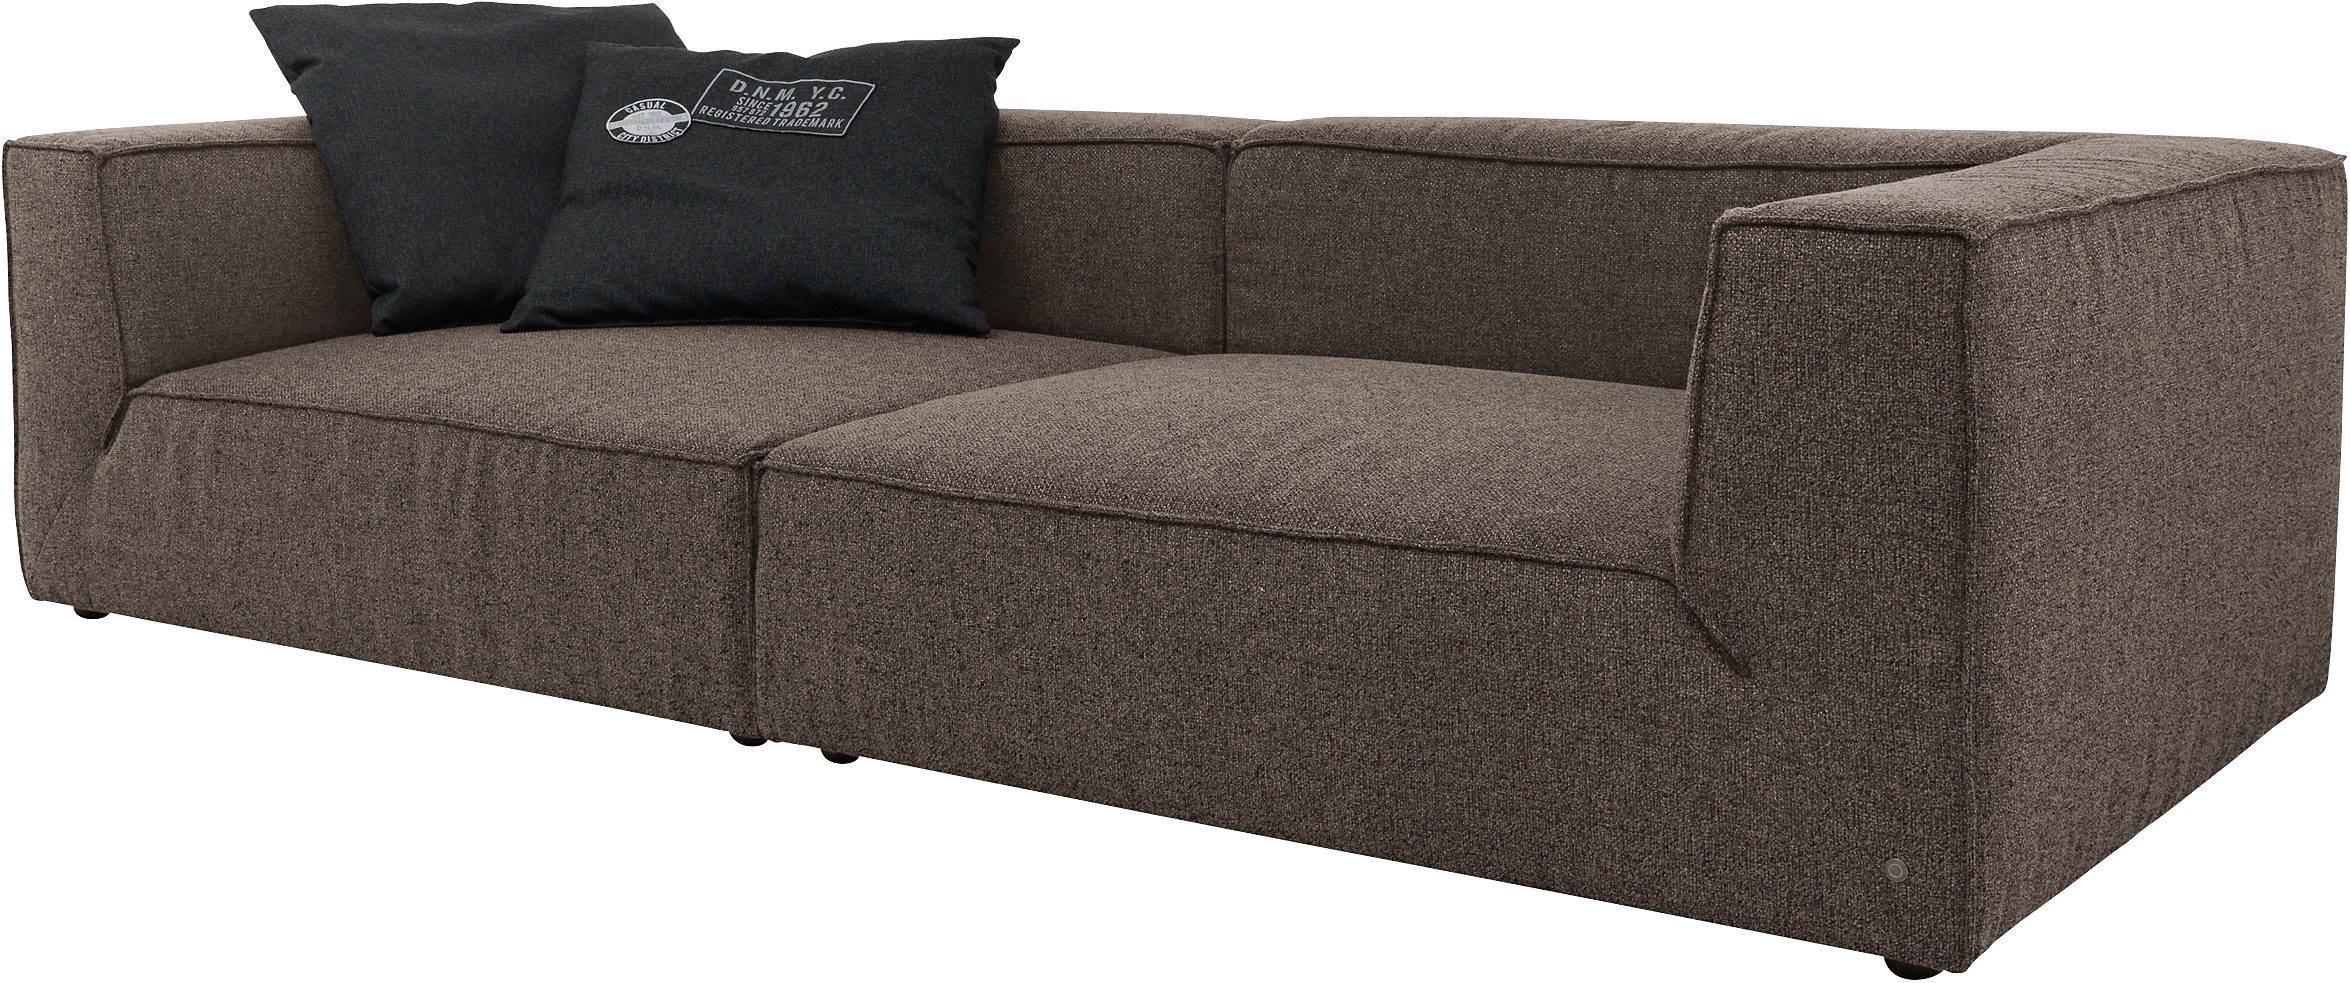 Big Sofa Xxl Beige Tom Tailor Big-sofa »big Cube«, Wahlweise Mit